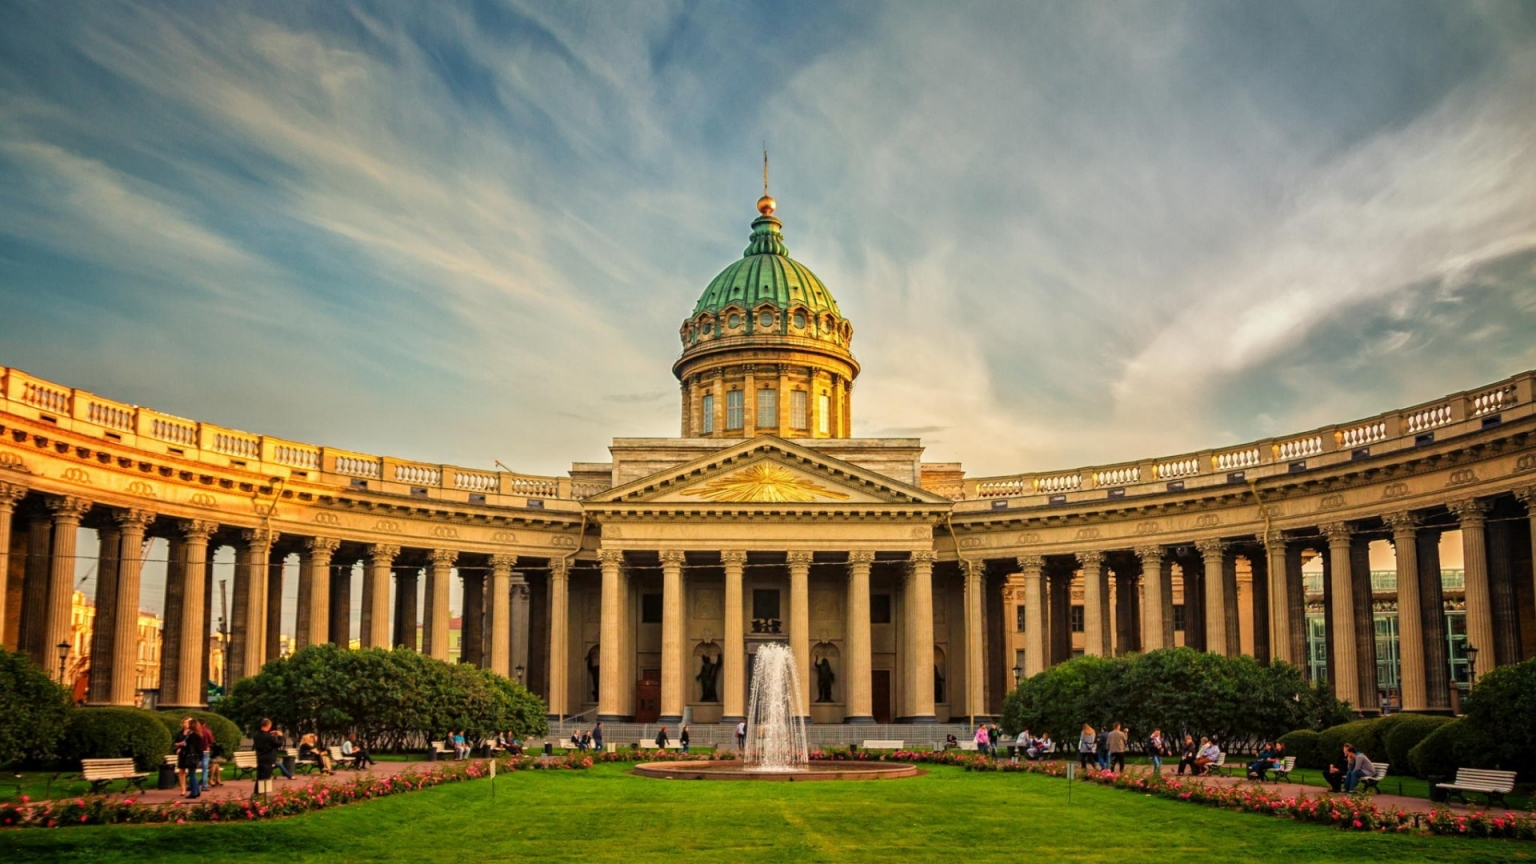 Beautiful Kazan Cathedral St. Petersburg for 1536 x 864 HDTV resolution